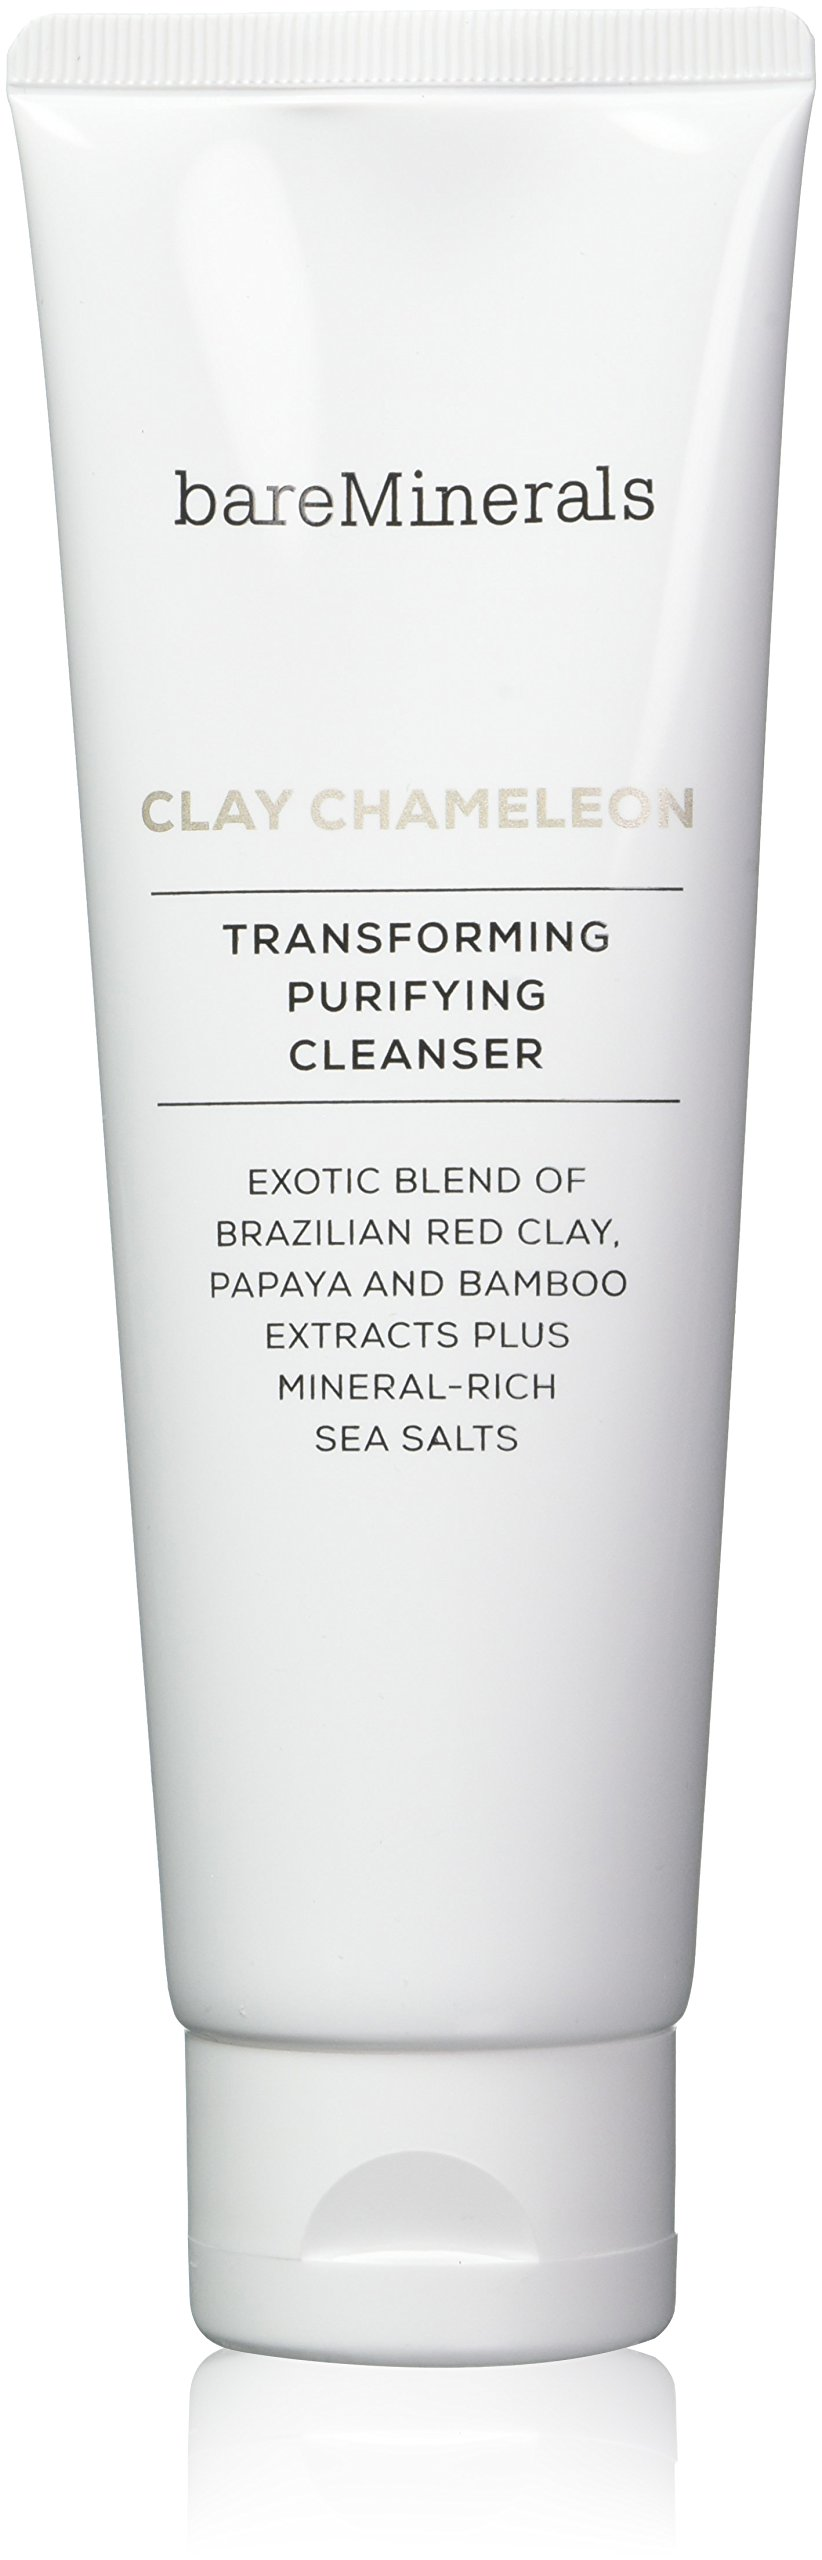 bareMinerals Clay Chameleon Cleanser, 4.2 Ounce